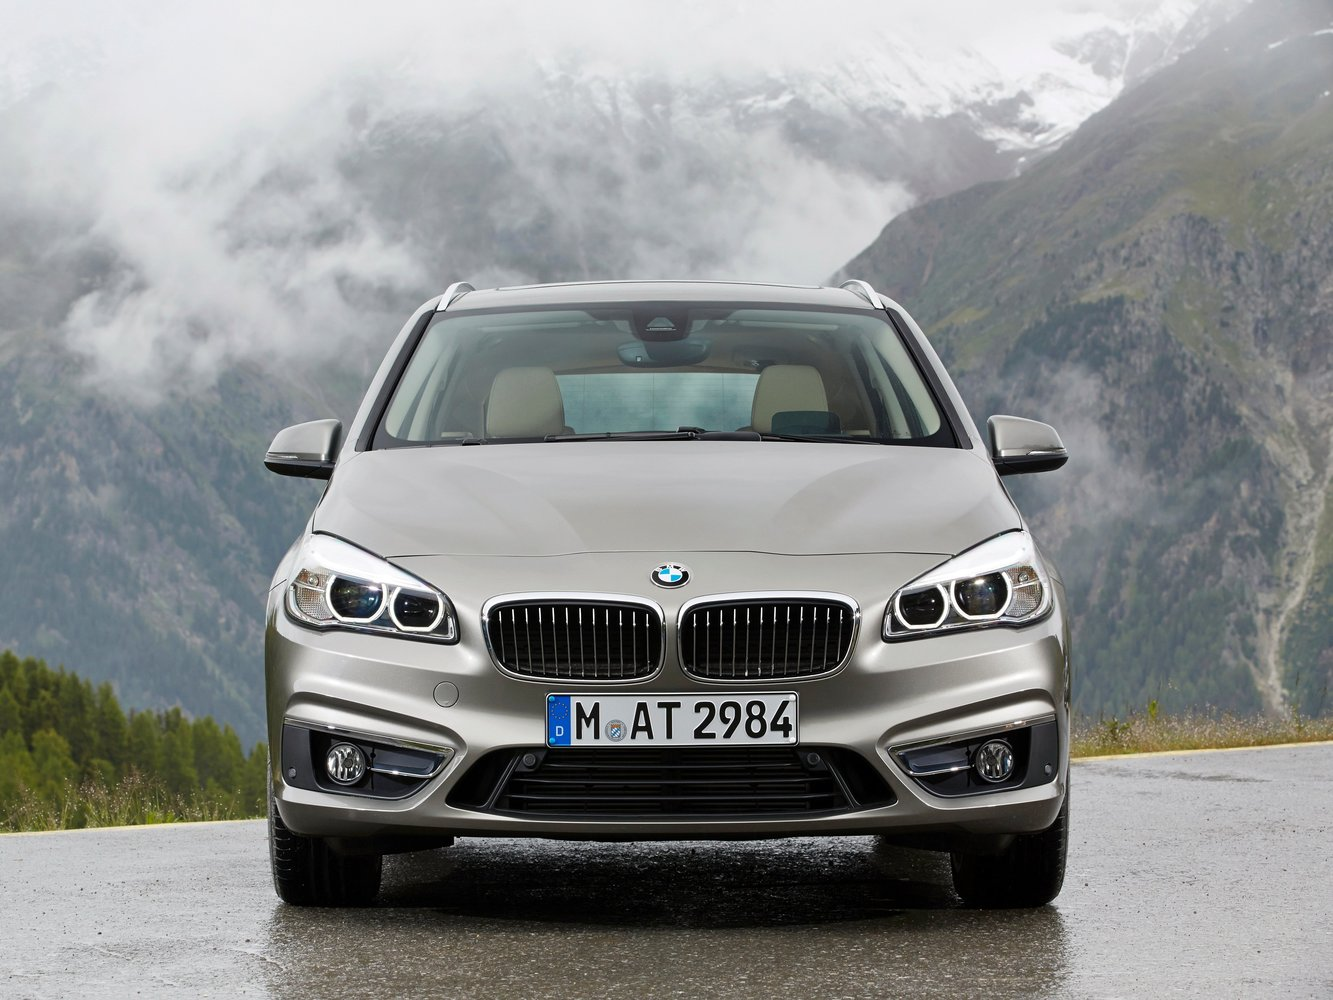 минивэн BMW 2er Active Tourer 2014 - 2016г выпуска модификация 1.5 AT (116 л.с.)